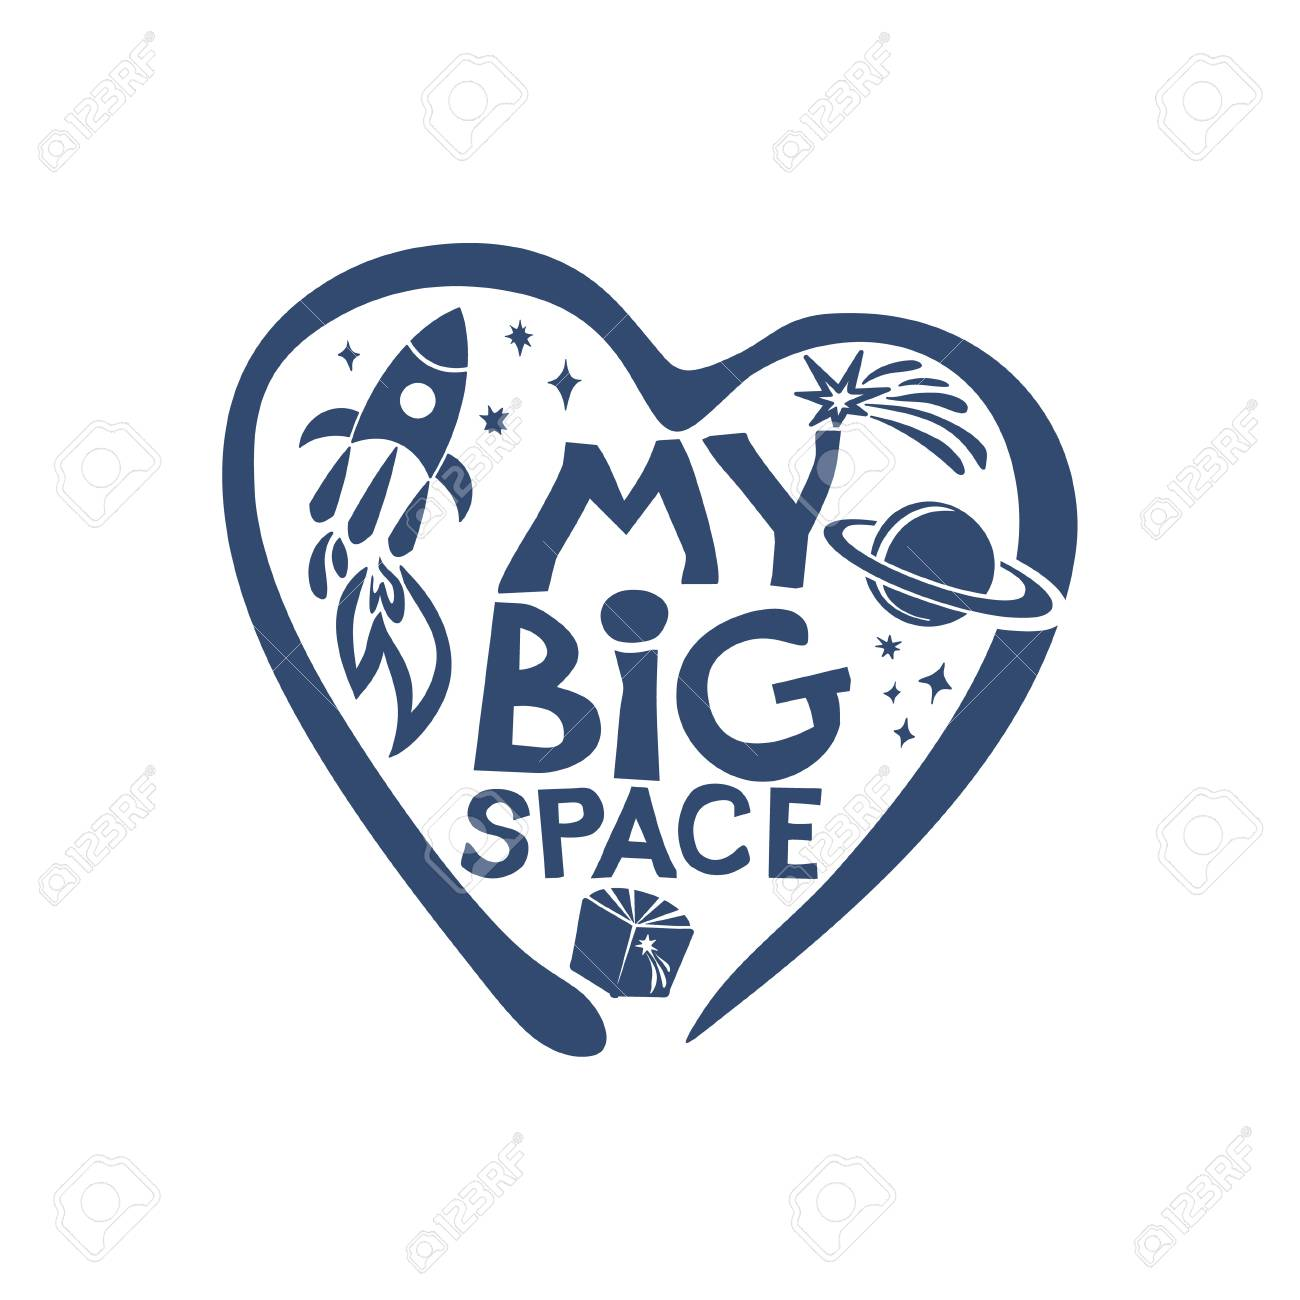 My Big Space Love Cosmos Flat Graphic Symbol Of The Dream Of